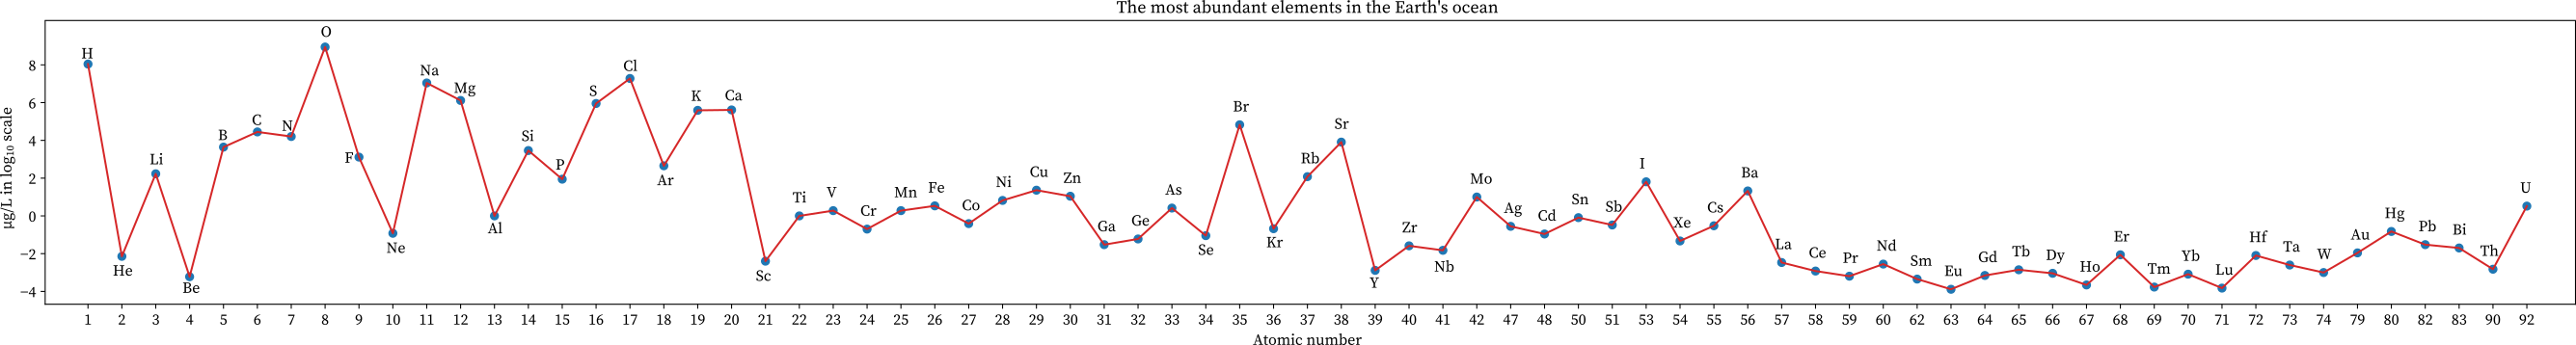 The abundance of elements in seawater or oceans